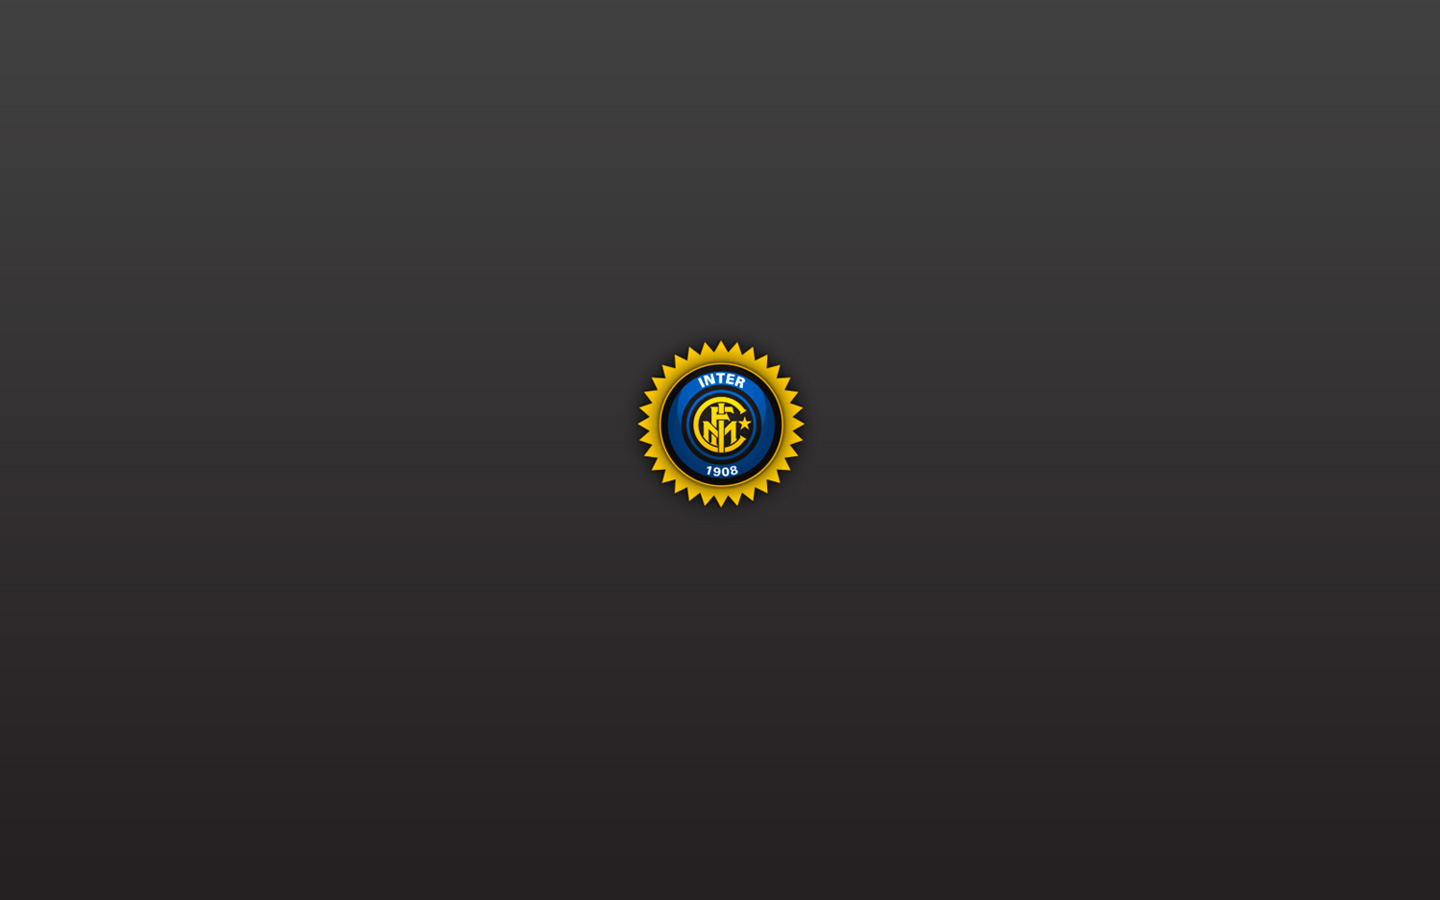 inter milan wallpaper 2012 - photo #24